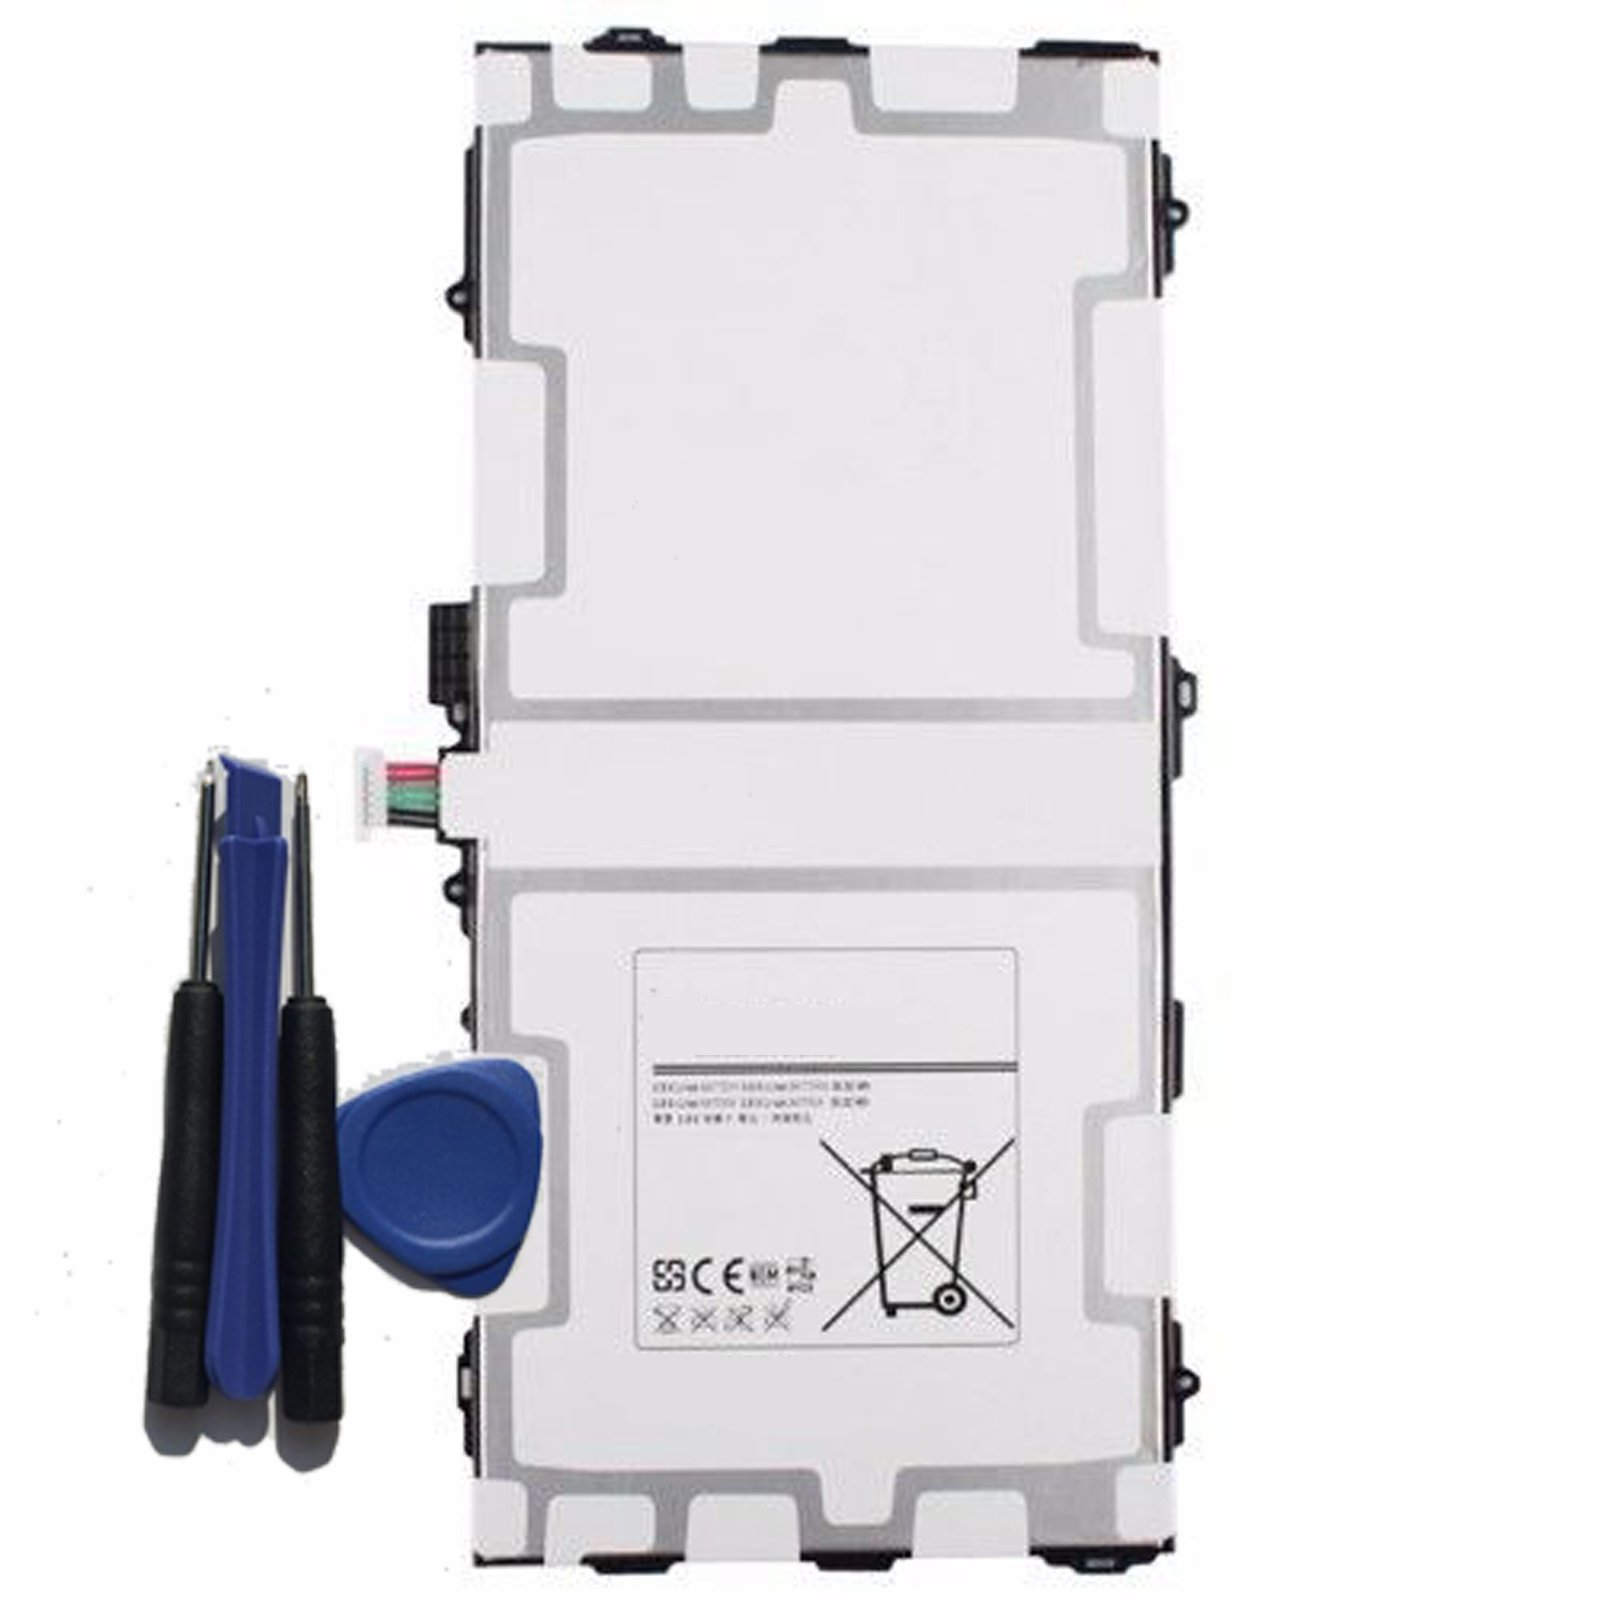 Etechpower replacement EB-BT800FBU Battery for Samsung Galaxy TAB S 10.5 LTE SM-T800 SM-T801 SM-T805 SM-T807 SM-T807A SM-T807P Series Tablet EB-BT800FBJ EB-BT800FBC EB-BT800FBE 3.8V 7900mAh